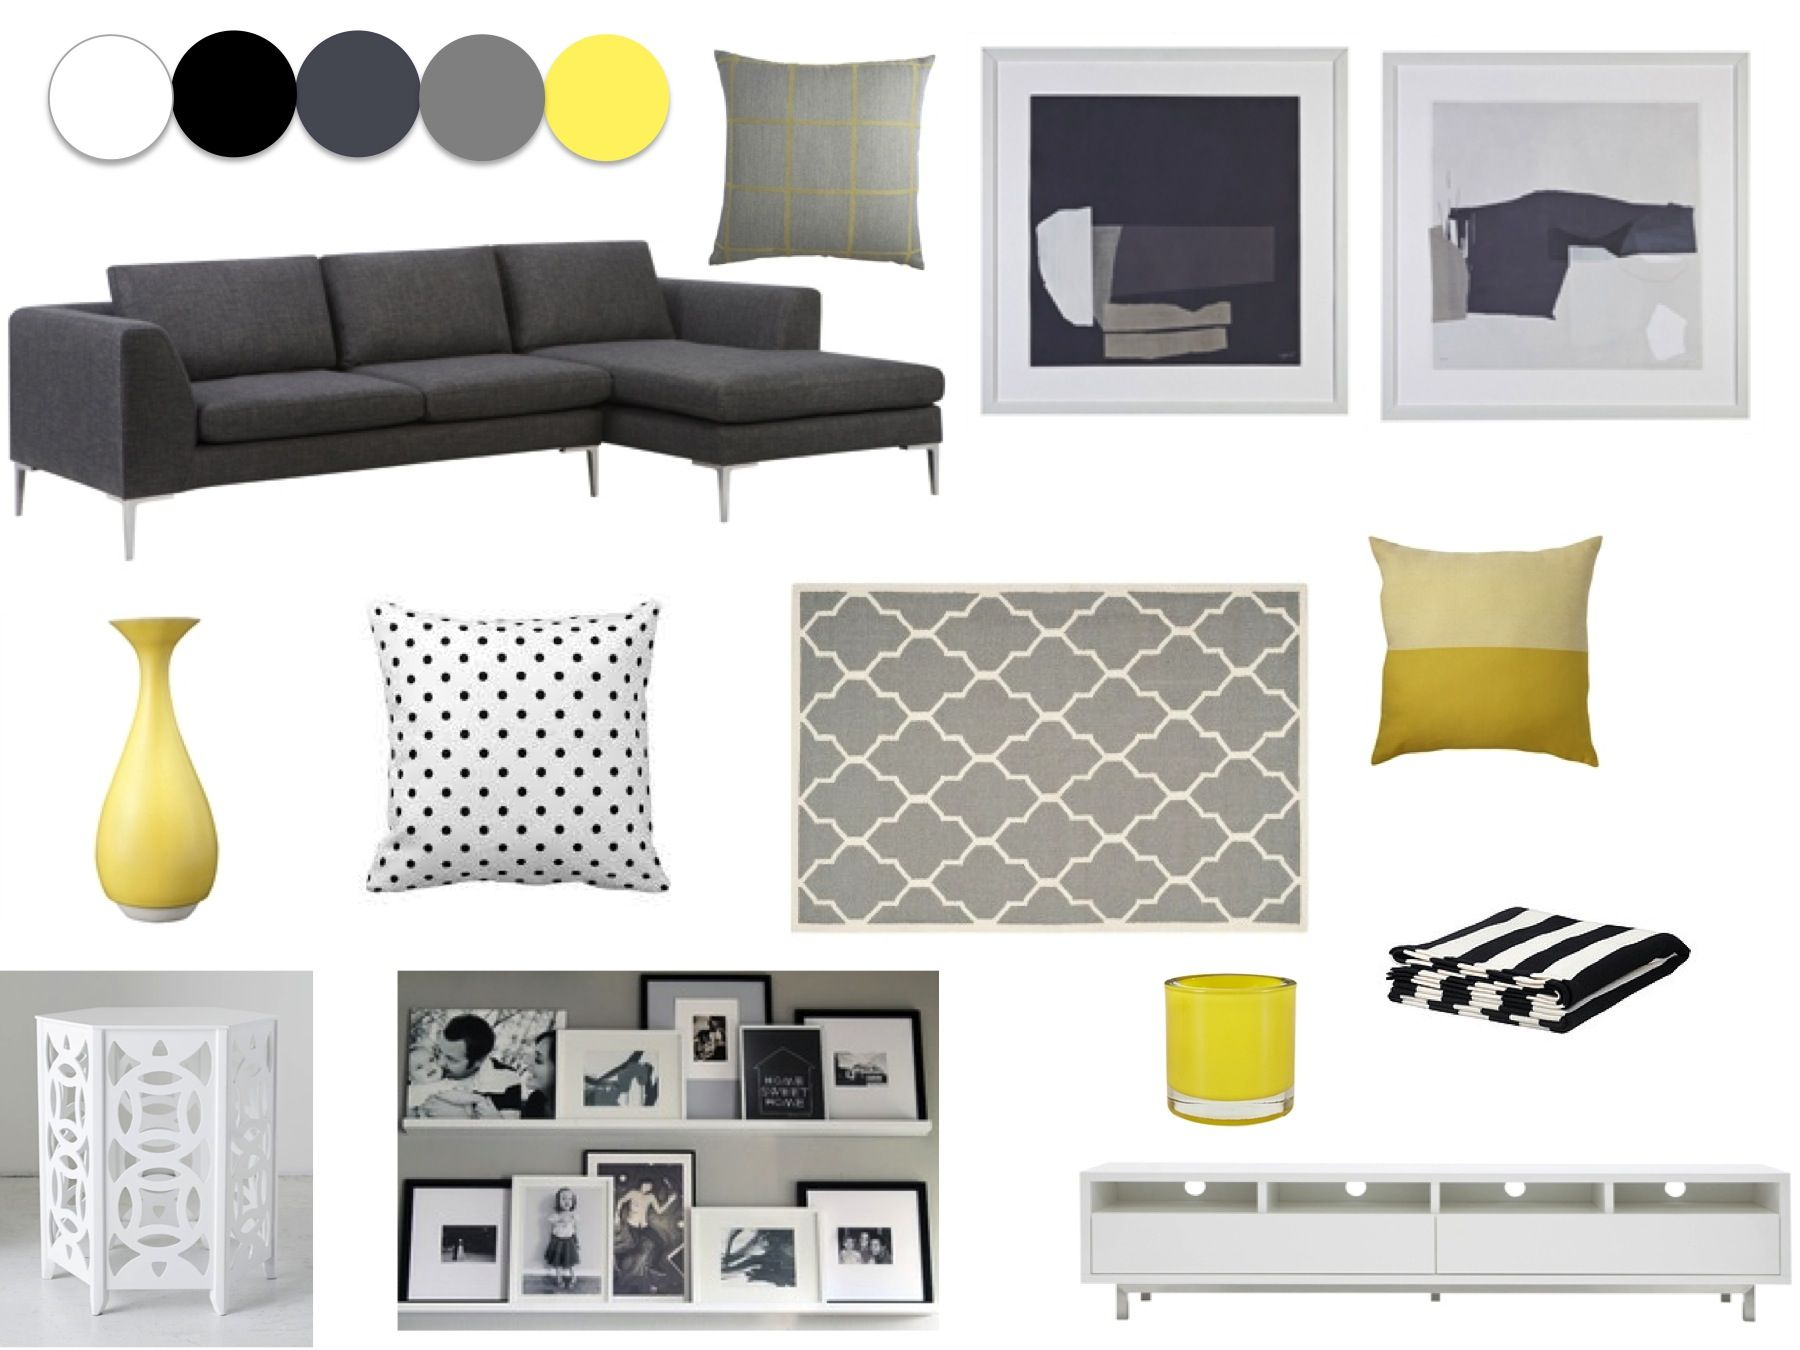 Pin By Jenny Hilario On Our New Home Living Room Grey Black Living Room Grey And Yellow Living Room